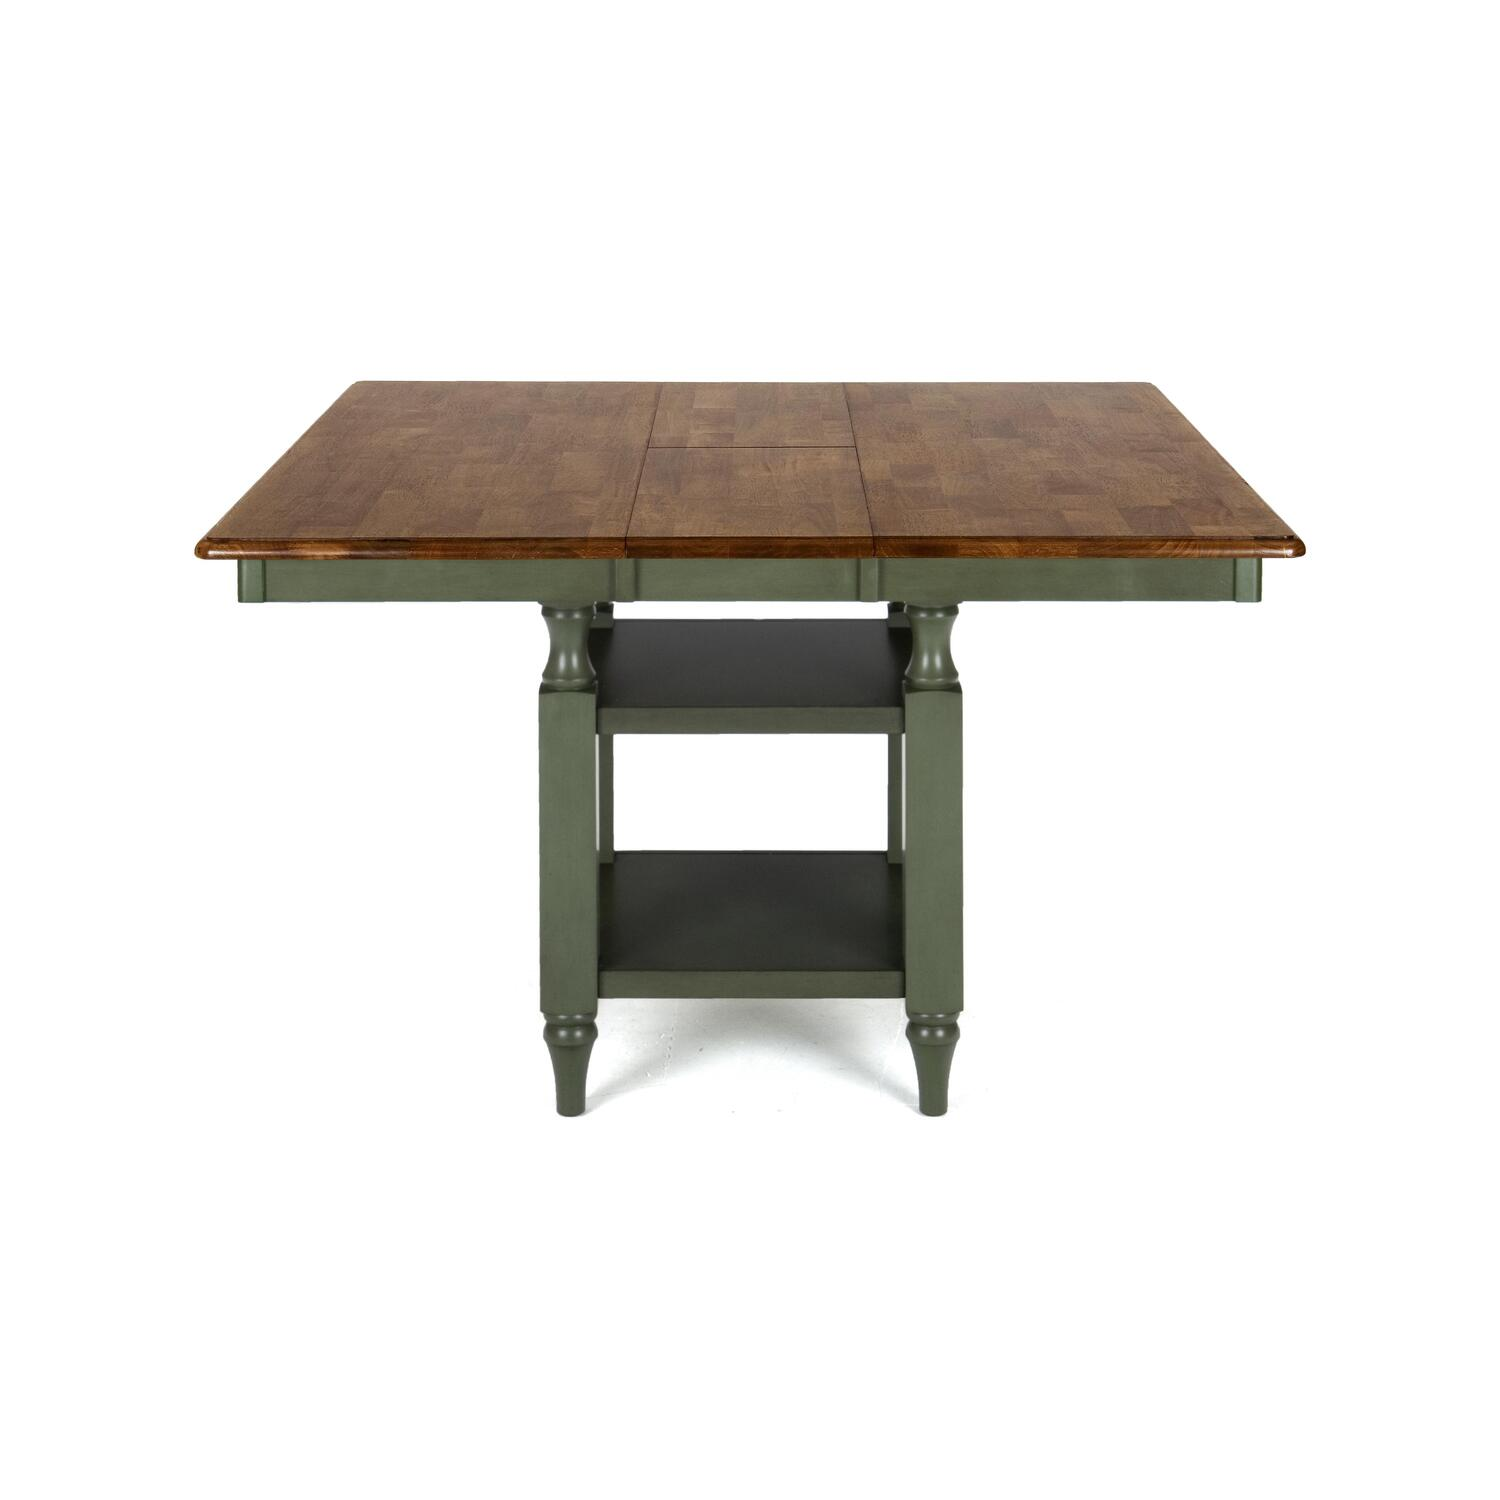 Fabulous Vintage Counter Height Table 3888 x 2592 · 369 kB · jpeg